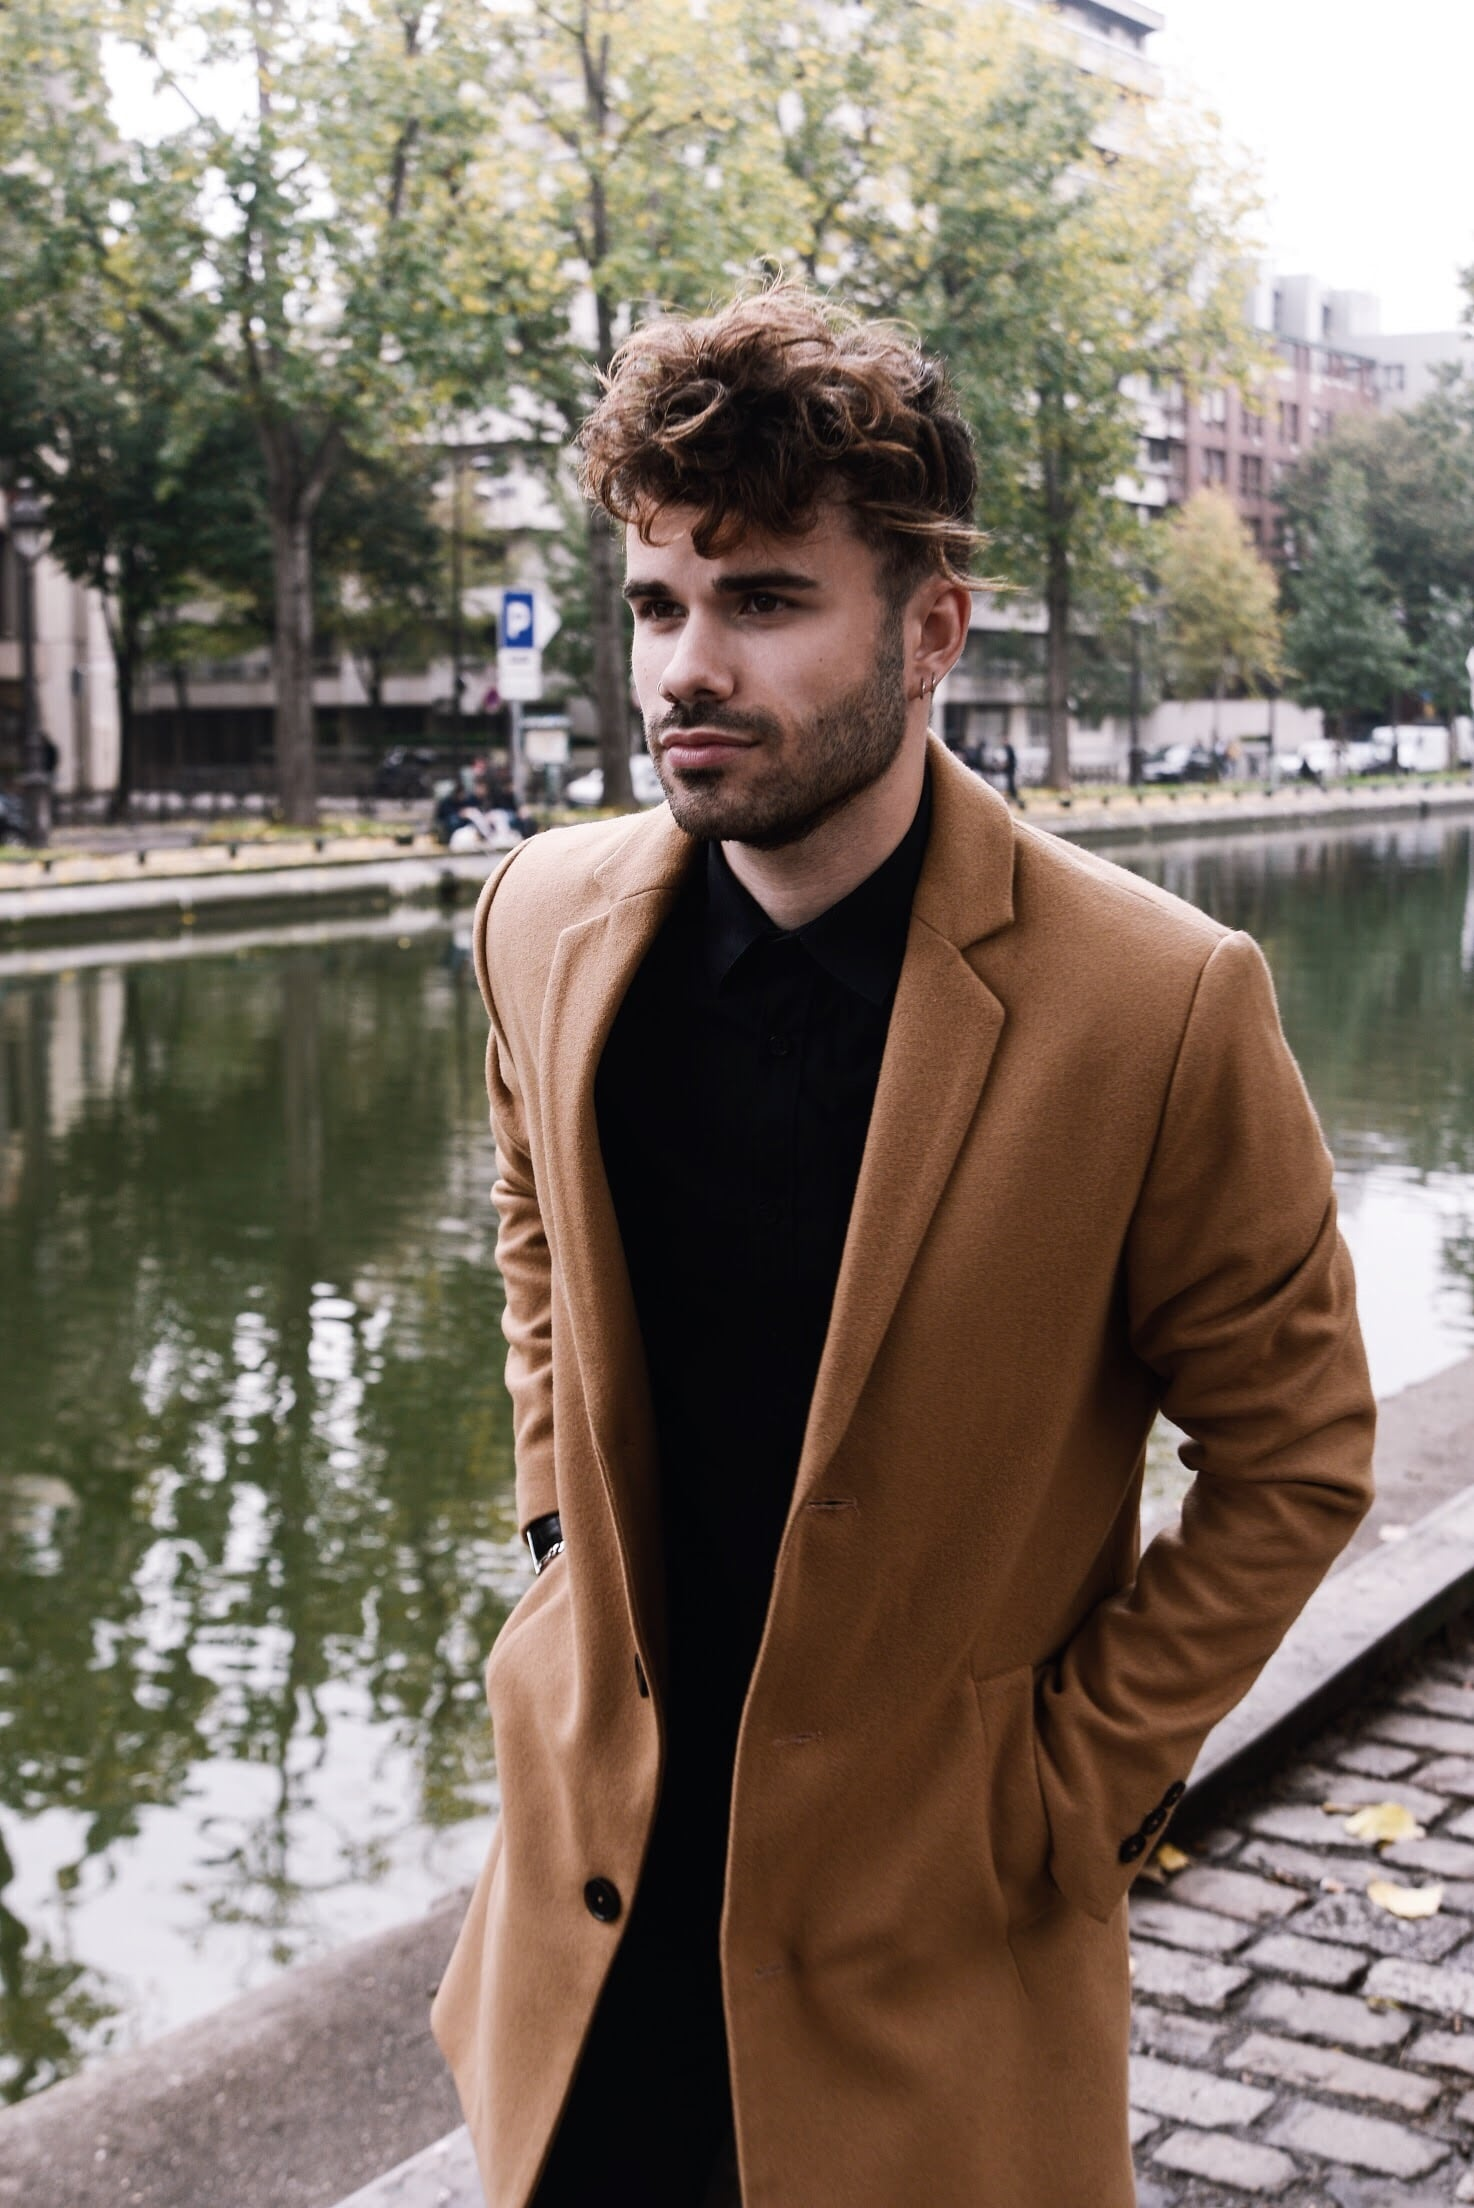 Manteau Brice Style Wtxqfxev In Hiver Enzo Long Homme Wcqxwipe8t Camel San1Oxwq